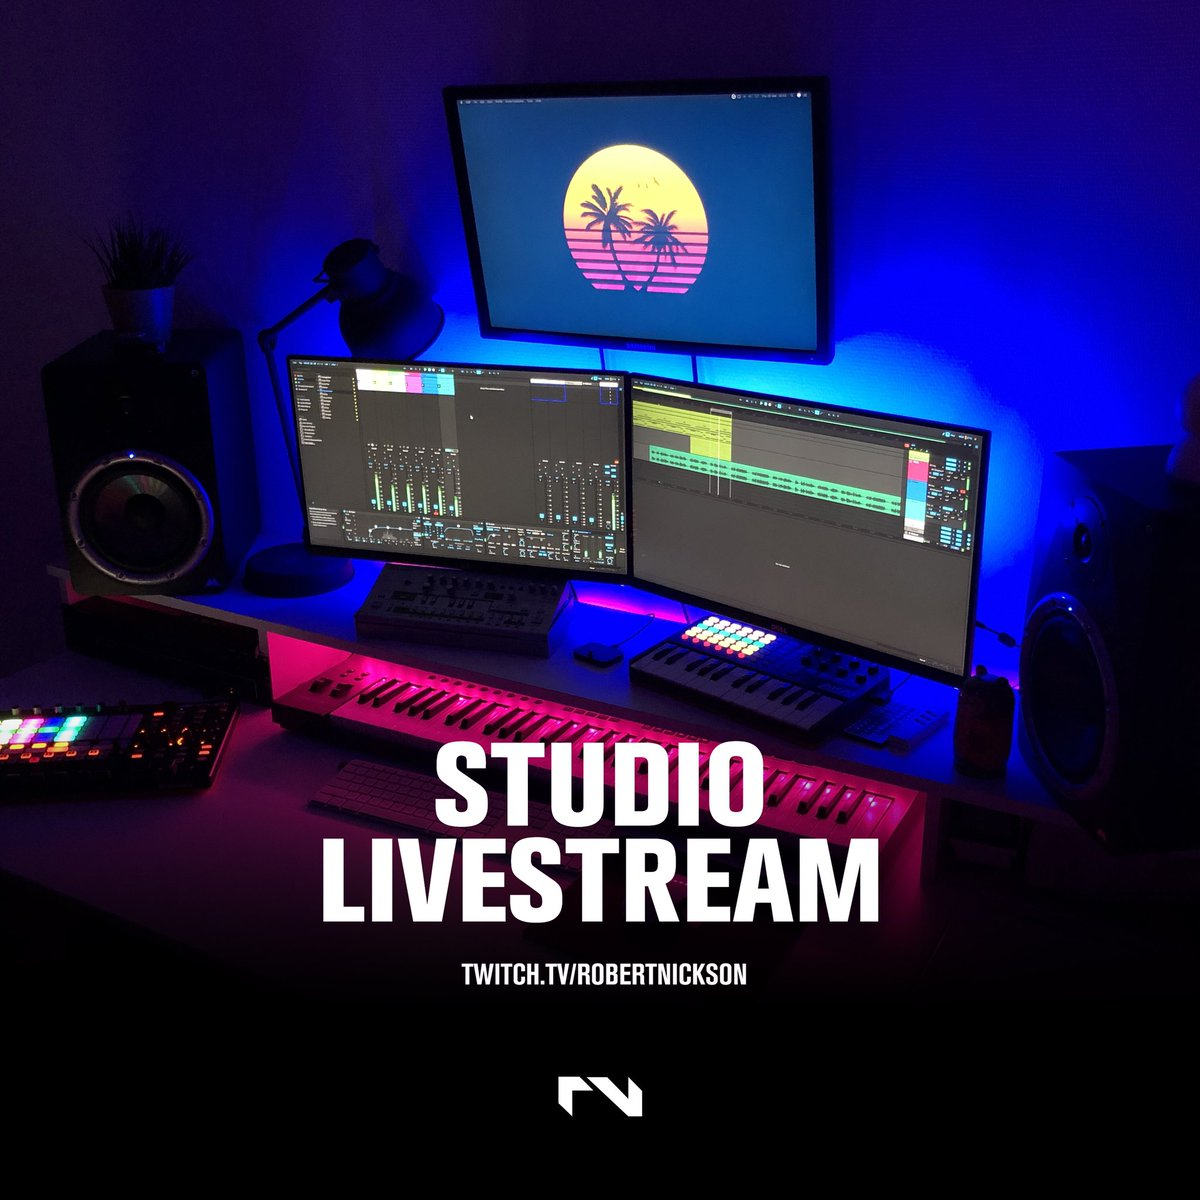 Join me in just under 3 hours on Twitch as I (attempt to) make an RNX track from scratch.  https://t.co/CsrSOQJZ5L  18:00 CET 🇪🇺 17:00 GMT 🇬🇧  12:00 EST 🇺🇸  09:00 PST 🇺🇸   #ableton @Ableton #producer #studio #livestream #twitch #rnx #trance #prog https://t.co/2kY8Z8c05H